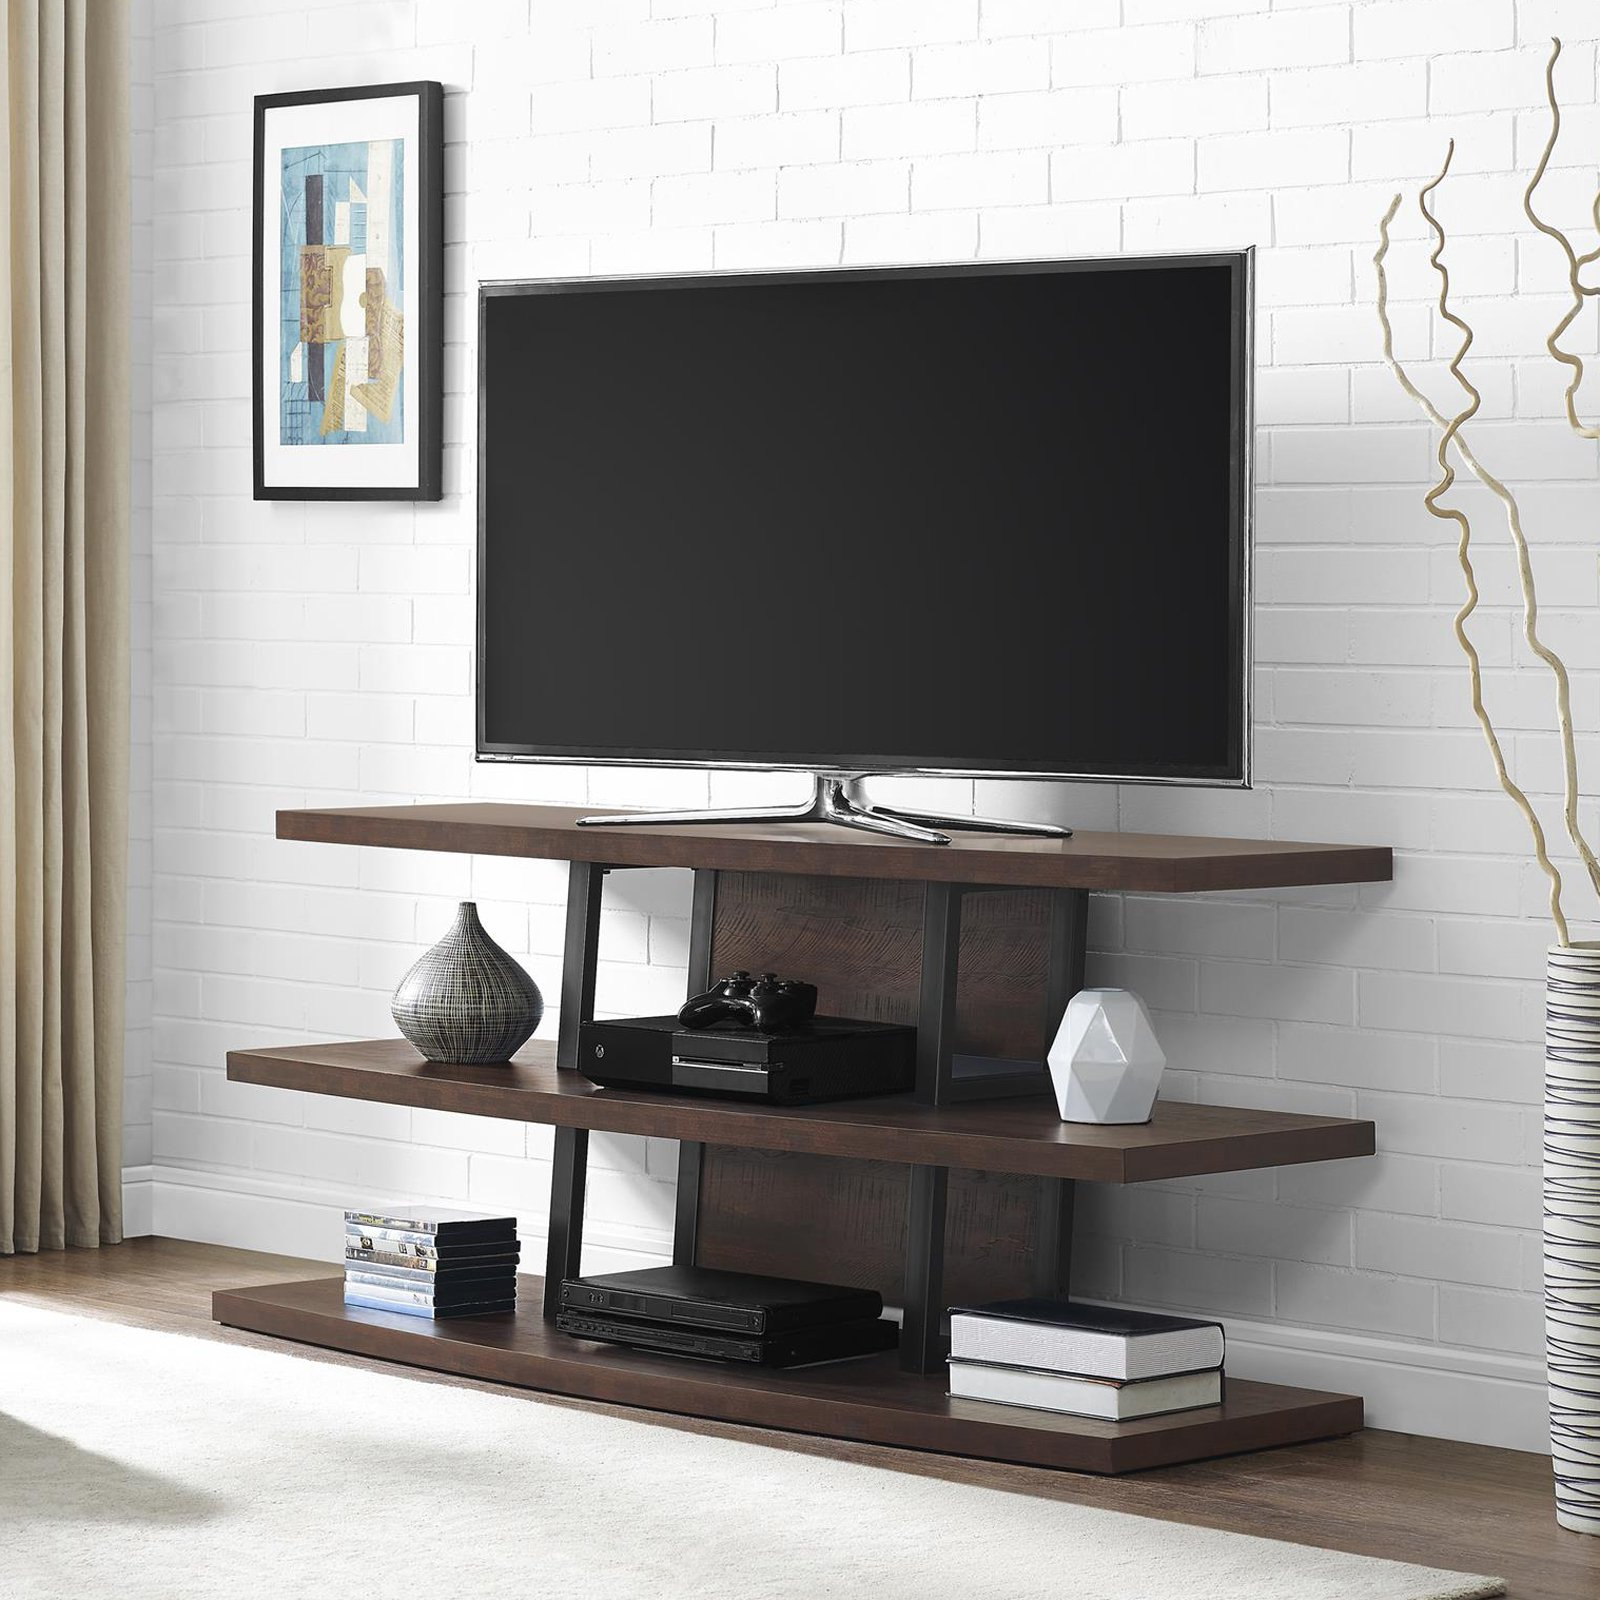 "Ameriwood Home Castling Tv Stand For Tvs Up To 55"", Espresso With Regard To Well Known Forma 65 Inch Tv Stands (View 6 of 20)"